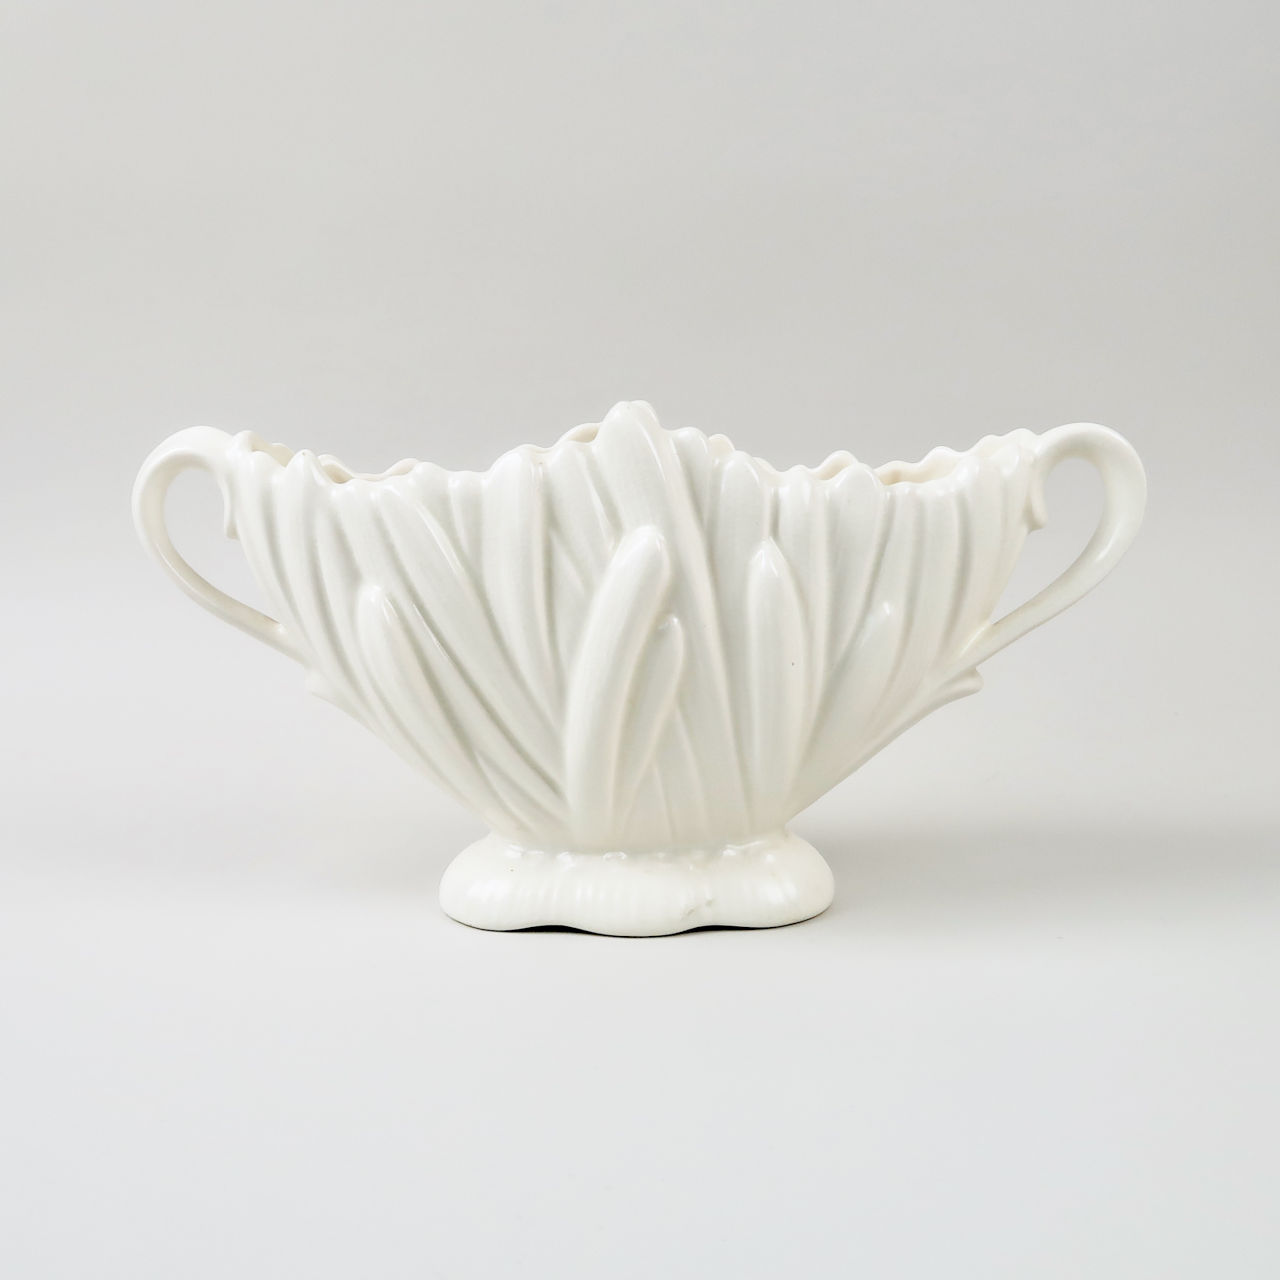 SylvaC White Hyacinth Vase with Handles